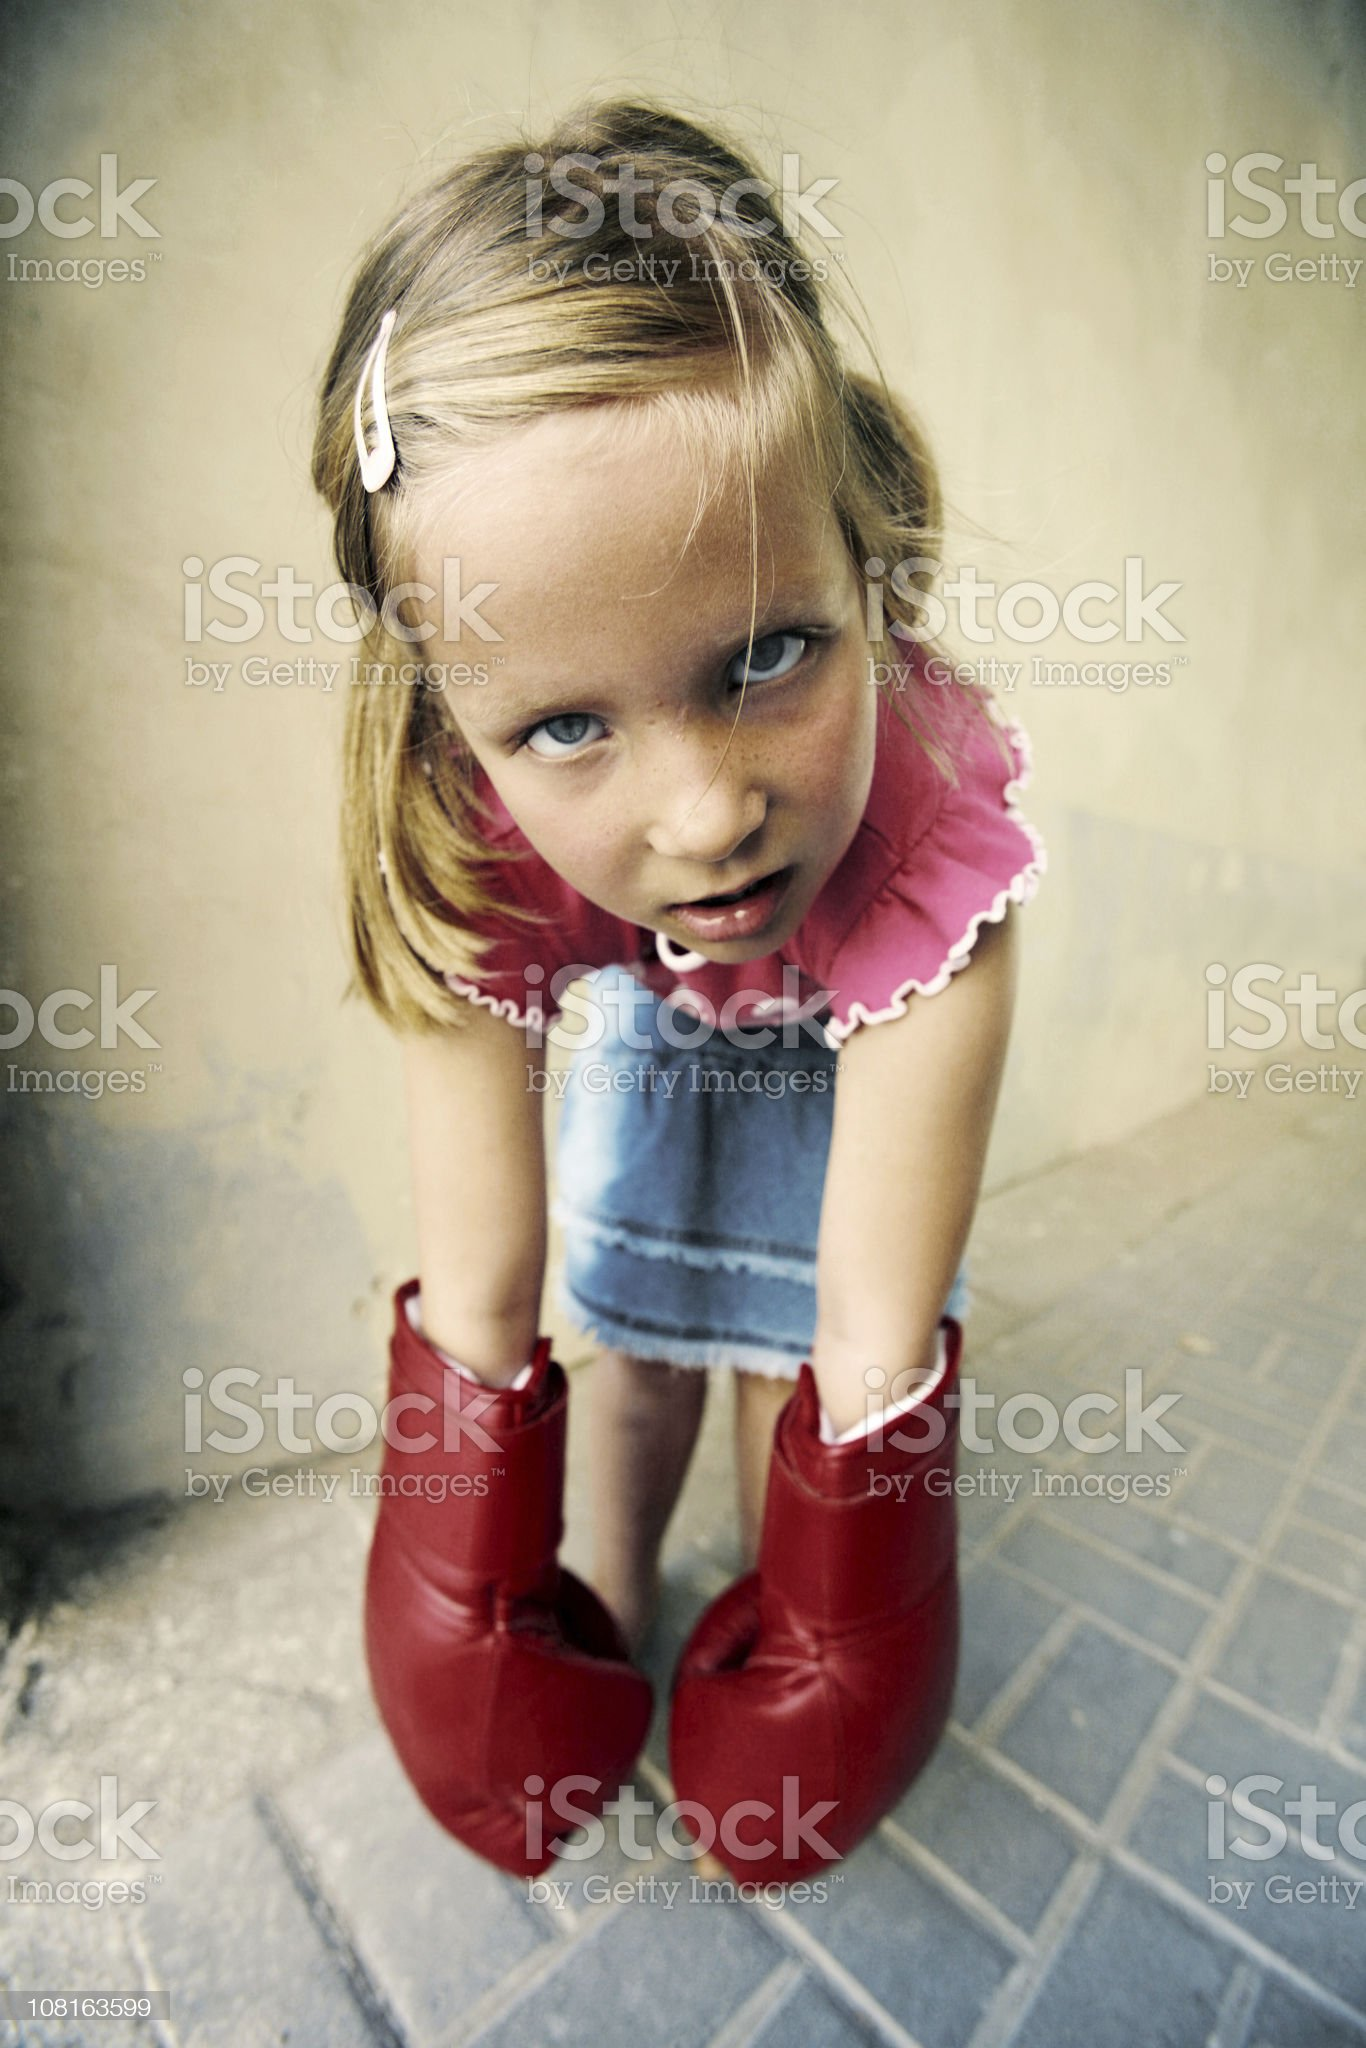 too heavy royalty-free stock photo